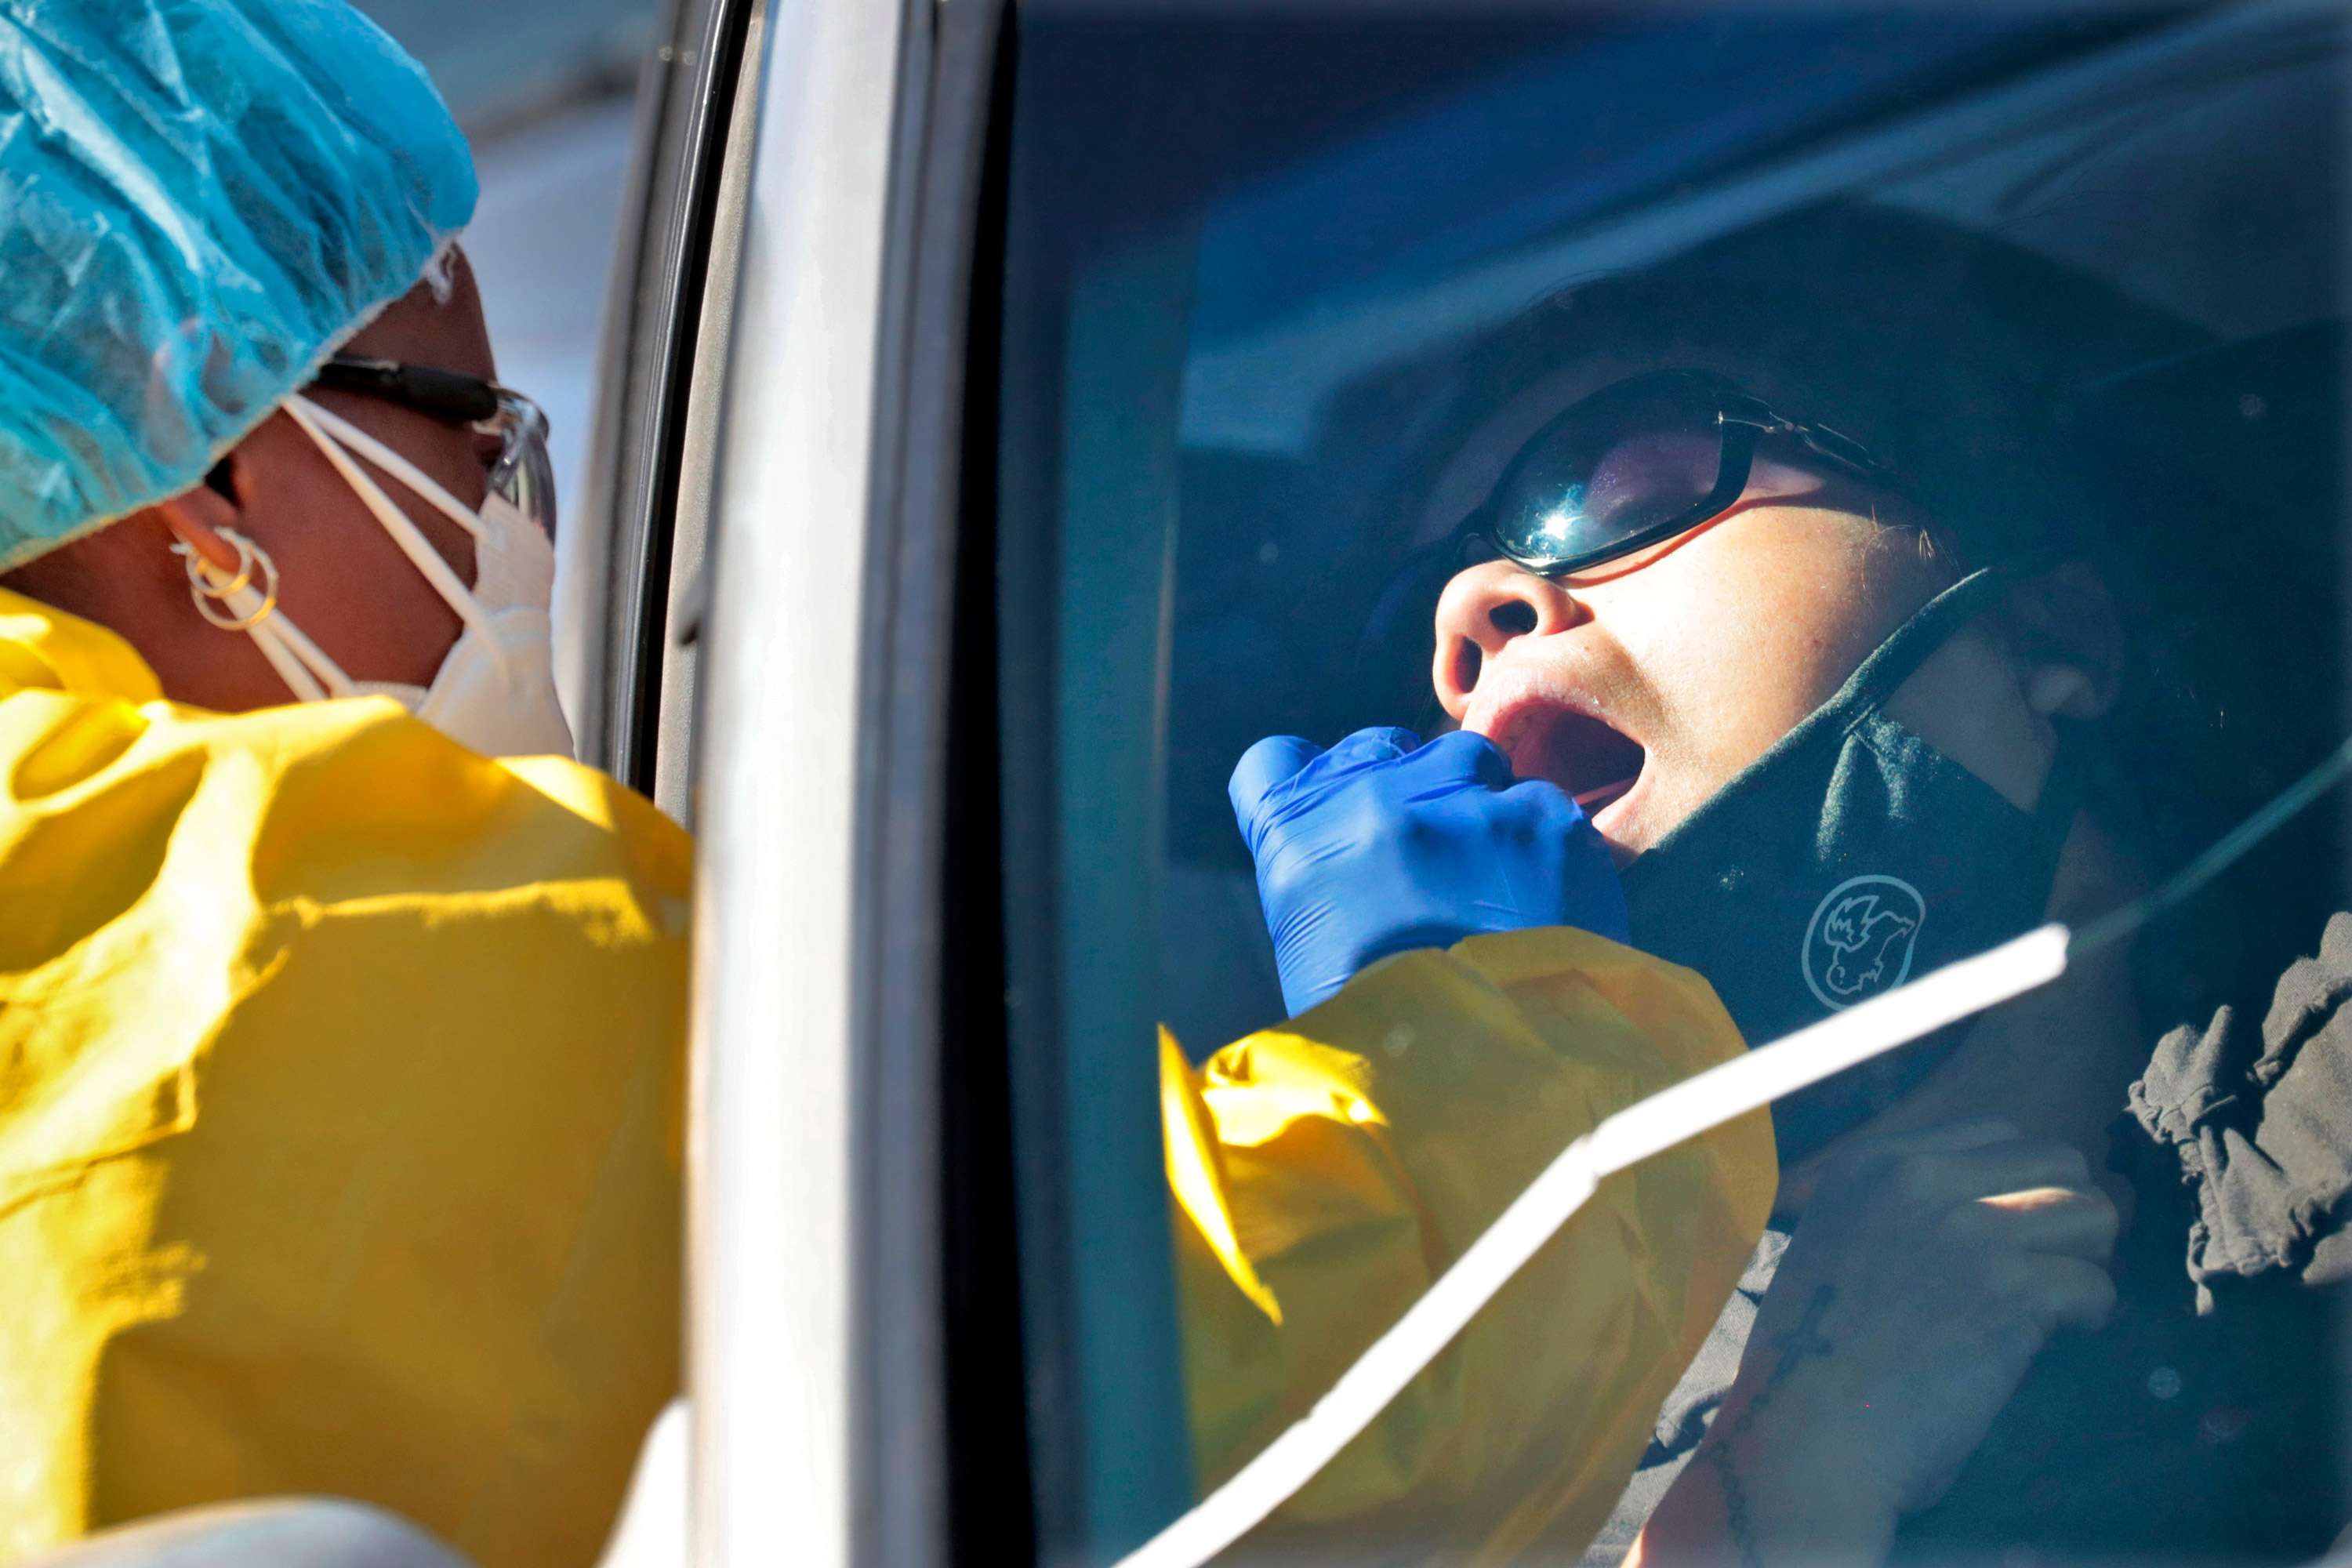 People get tested for COVID-19 at a drive through testing site hosted by the Puente Movement migrant justice organization on June 20 in Phoenix.